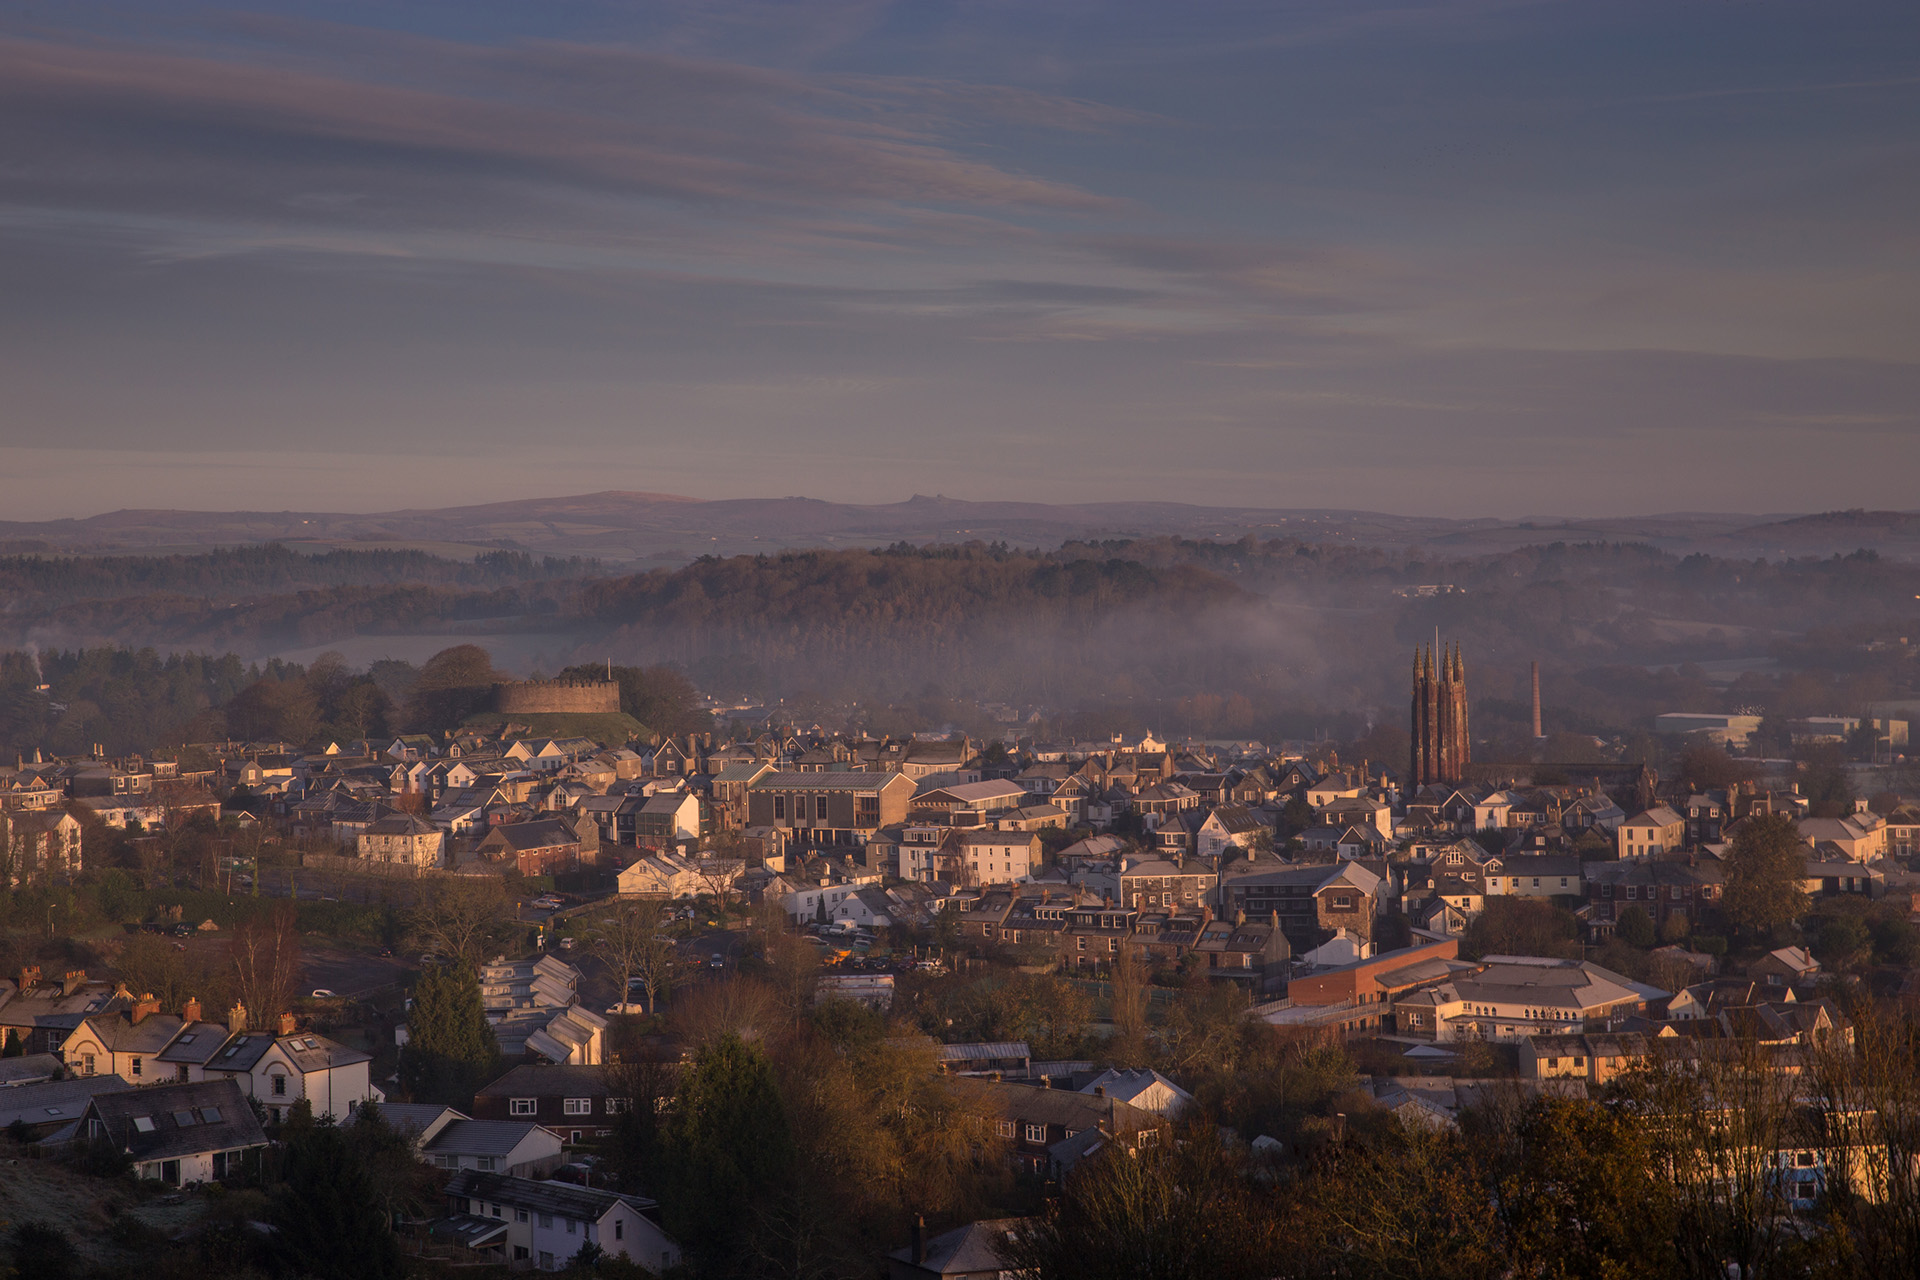 Frosty Winter Morning showing contrasting mediaeval architecture of Totnes and South Devon, behind it Dartington Hall Estate stretches into the forest.